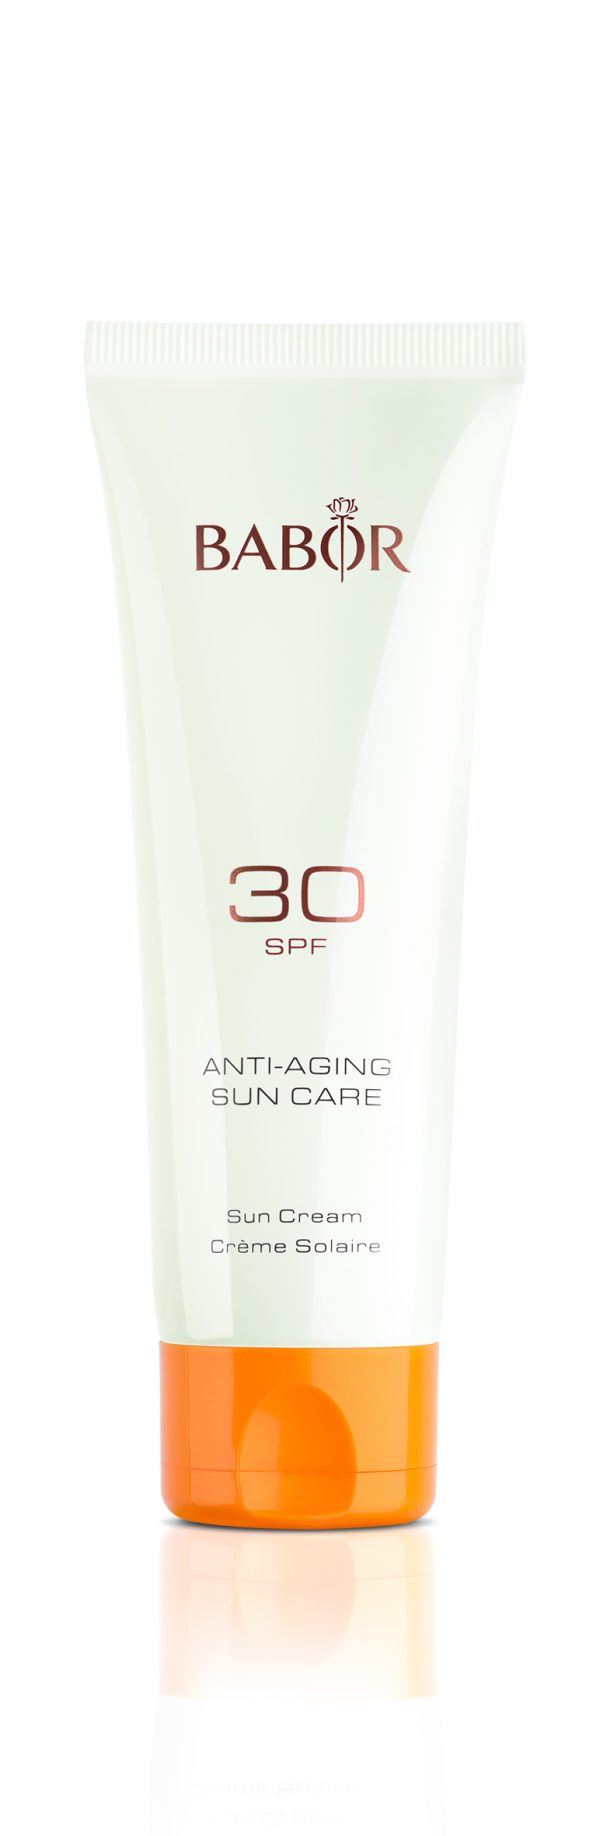 anti-aging-sun-care-sun-care-high-protection-sun-cream-spf-30-75ml-479075